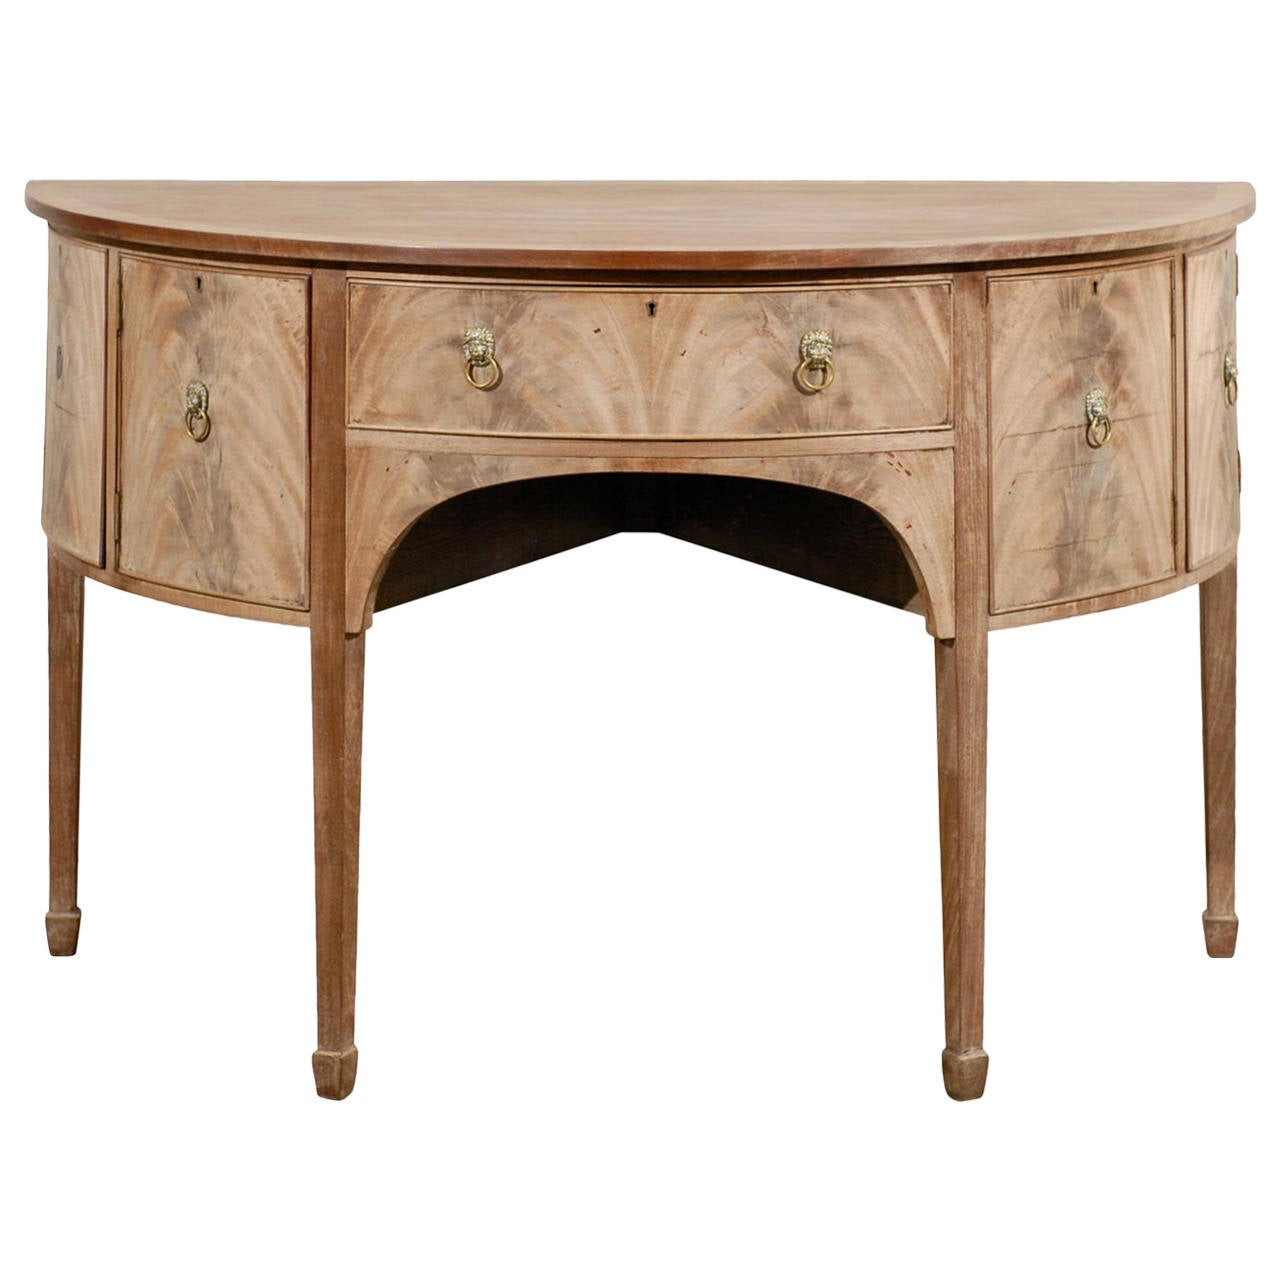 19th Century English Bleached Mahogany, George II Sideboard